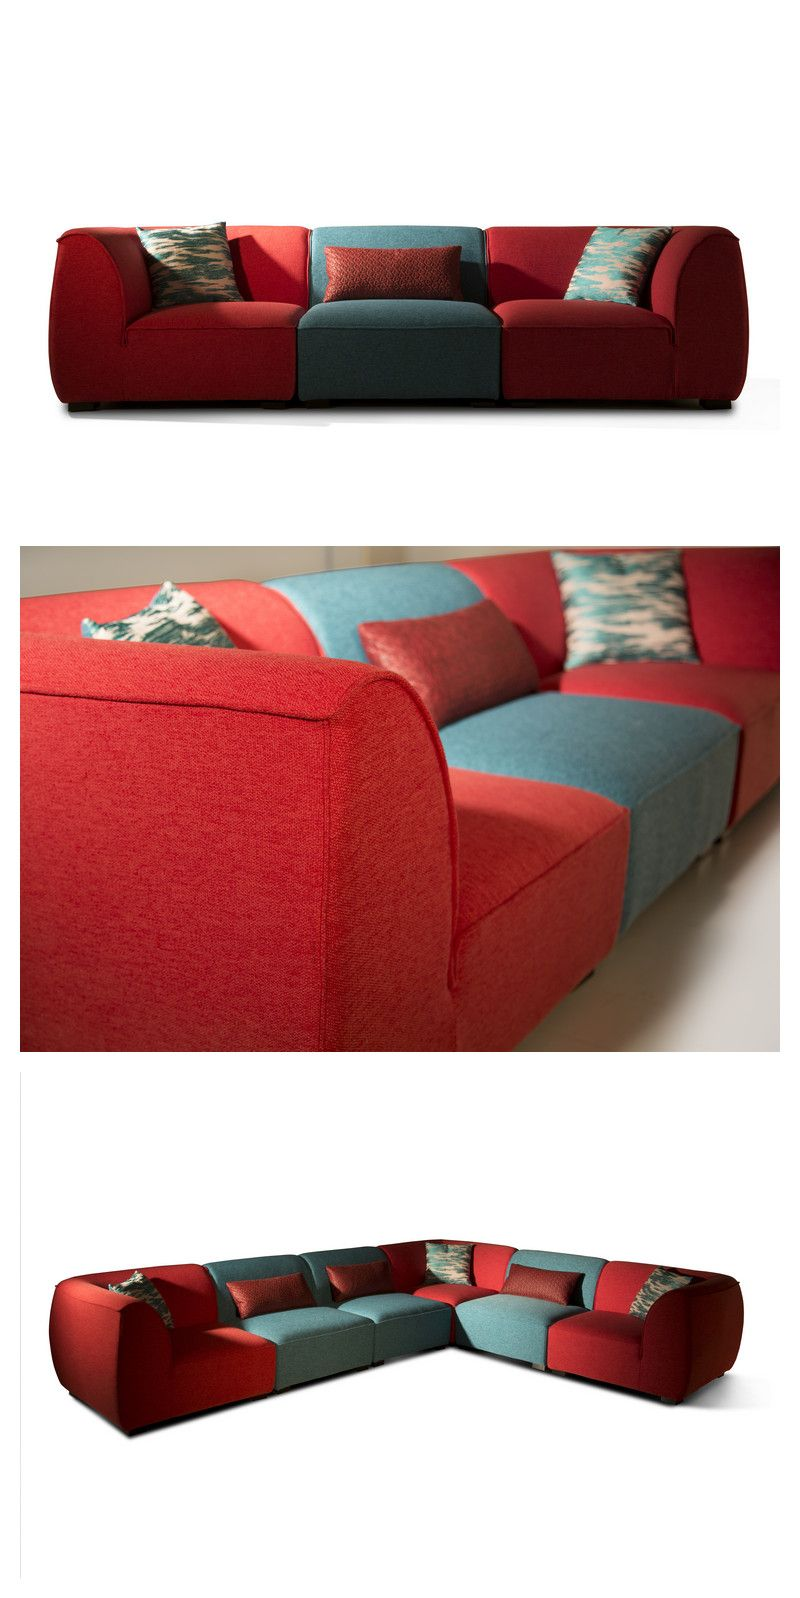 Modern Furniture Red And Teal Multi Combination 6 Seater Design 40 Inches Deep Sofa Set Cocheenfurniture Colorfuls Sofa Colors Deep Sofa Buy Modern Furniture